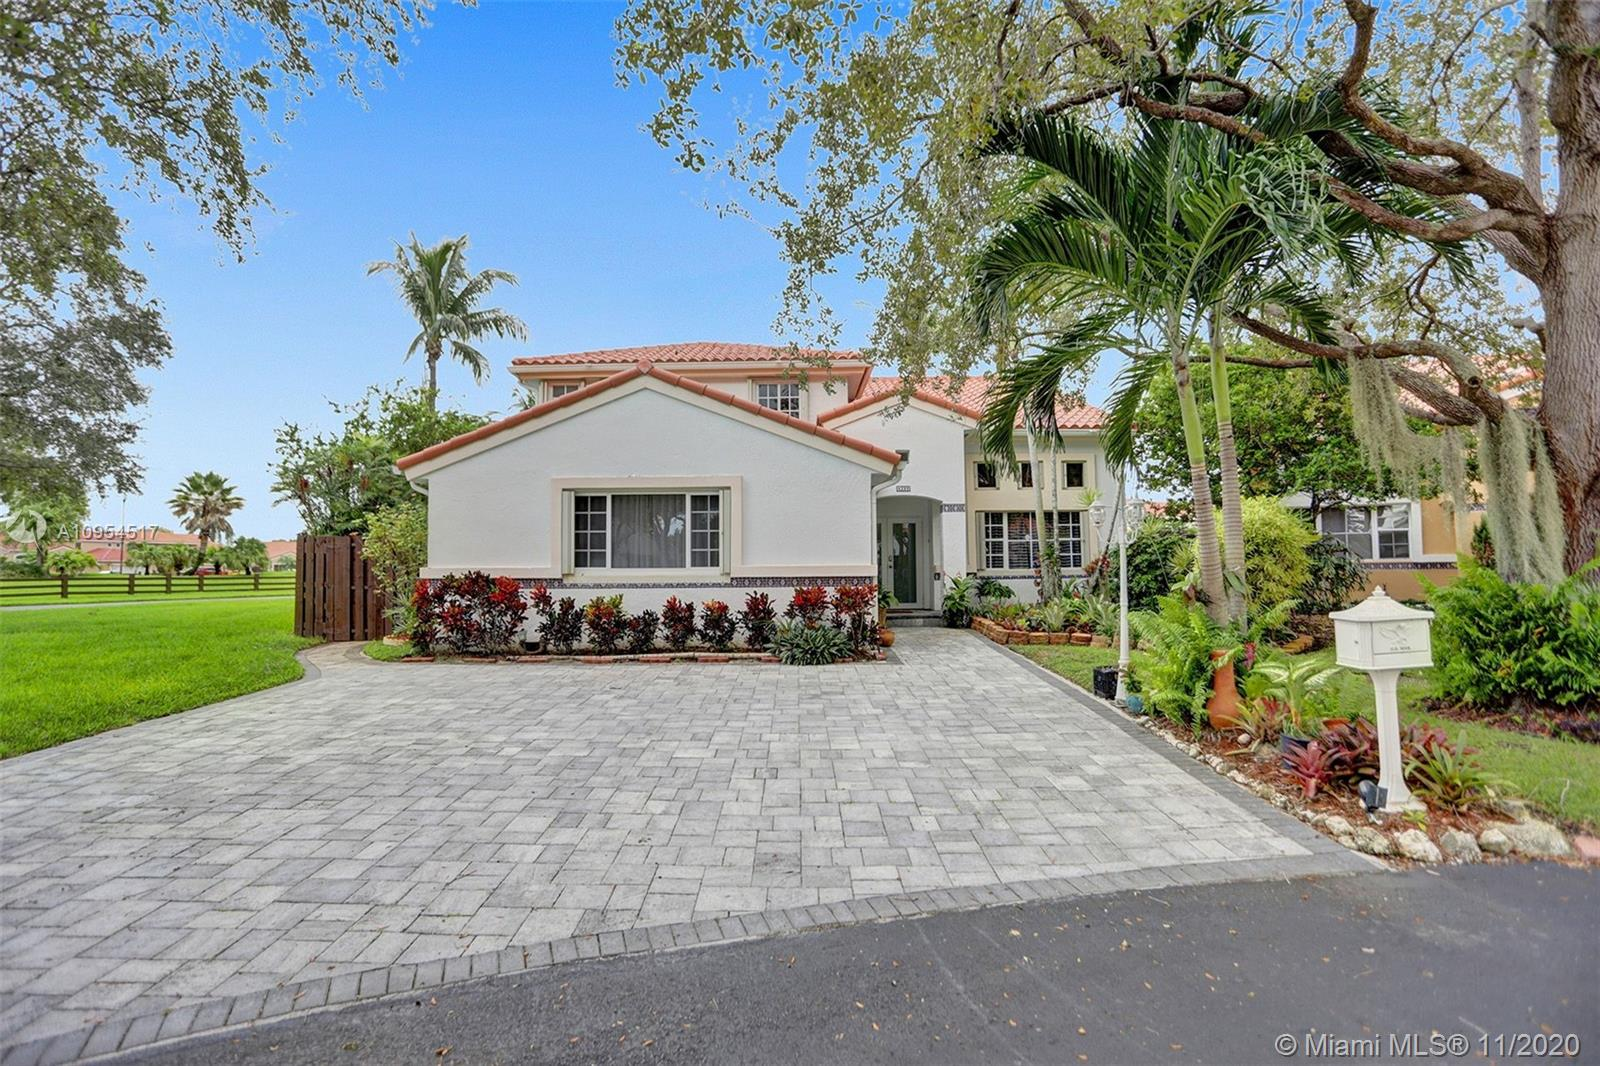 Details for 4299 148th Ave, Miami, FL 33185